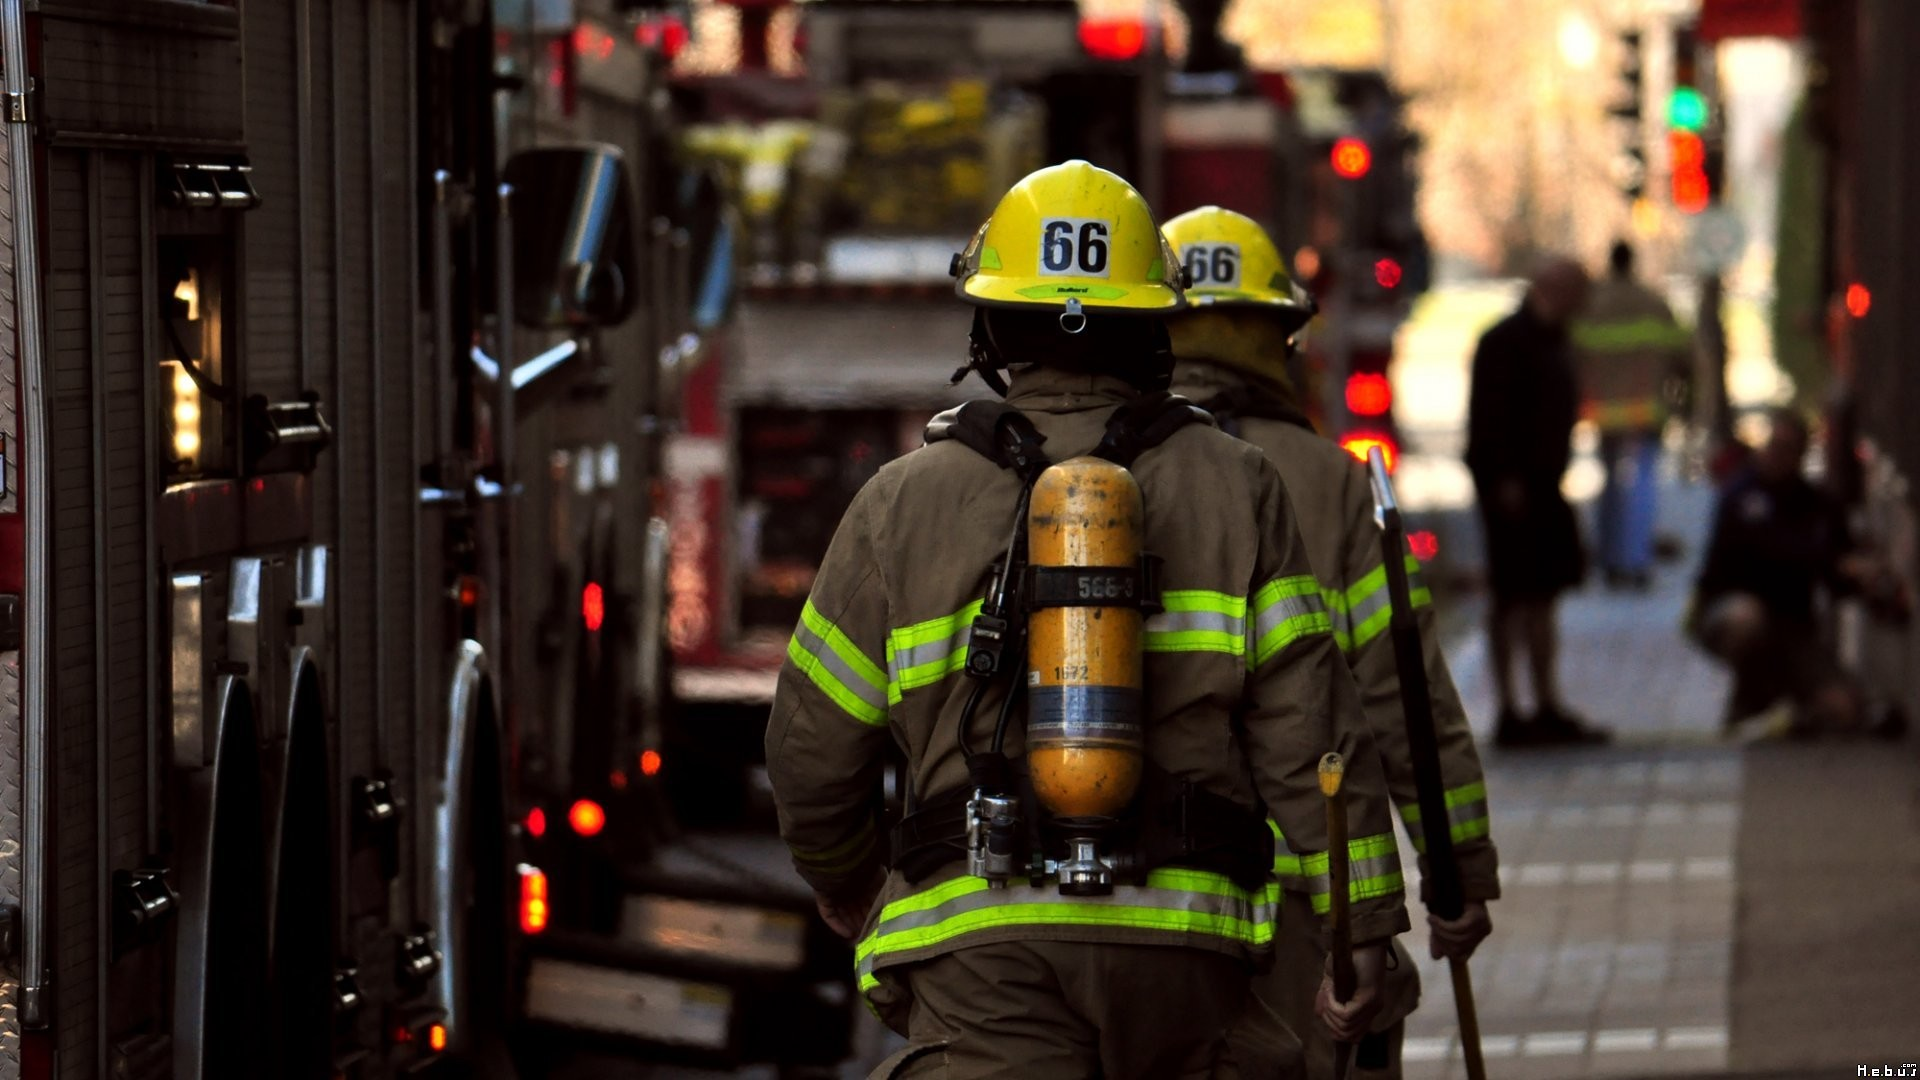 Firefighter-Streets-Urban-Fireman-wallpaper-wp3405549